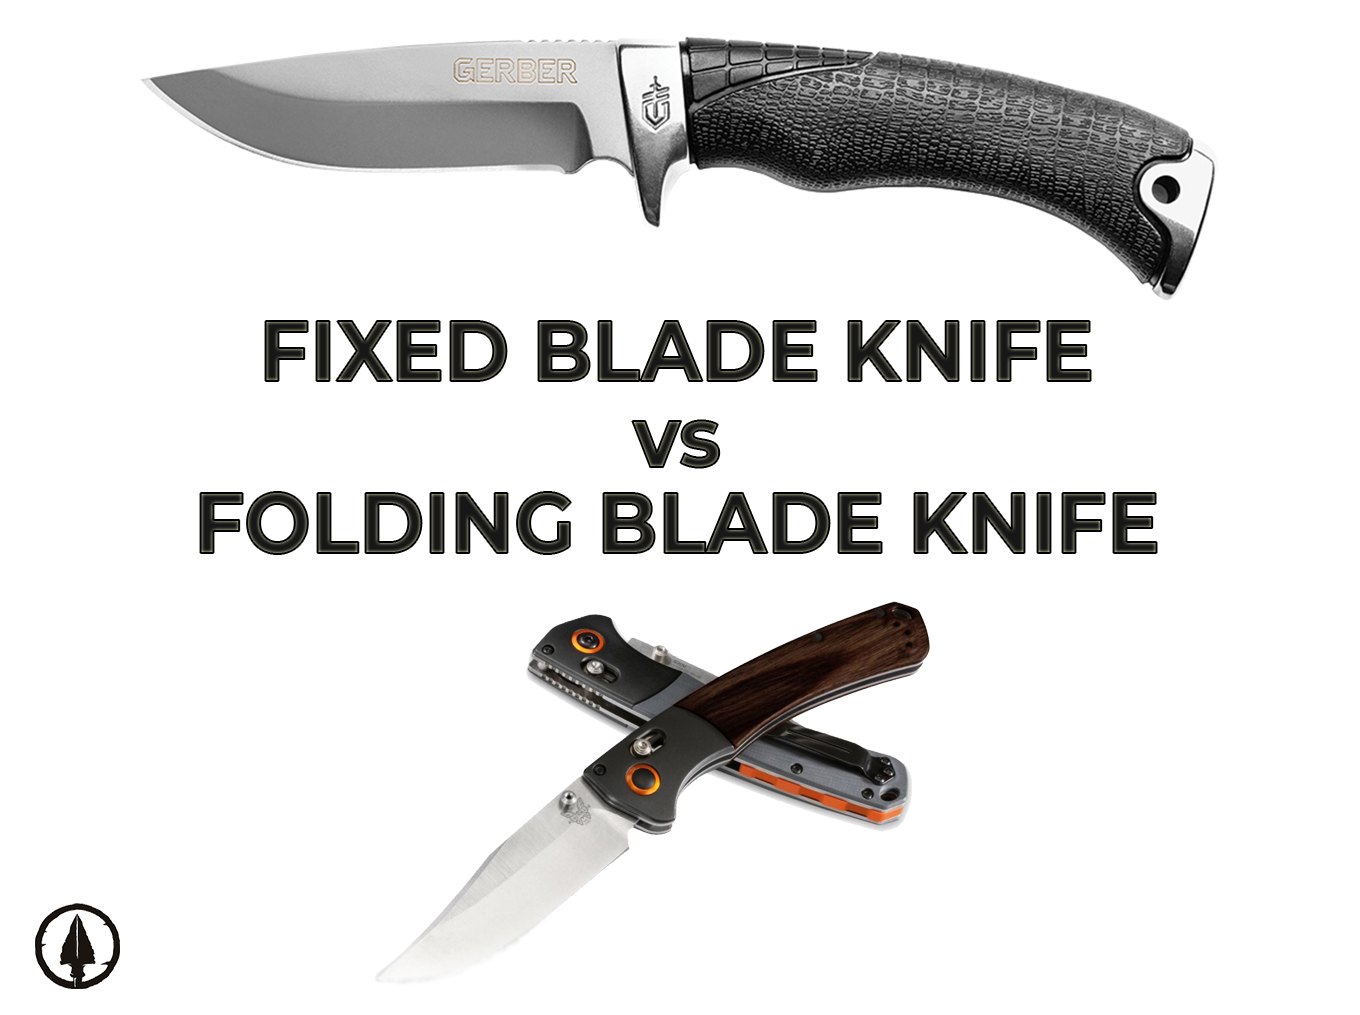 Fixed Blade knife vs Folder Blade knife